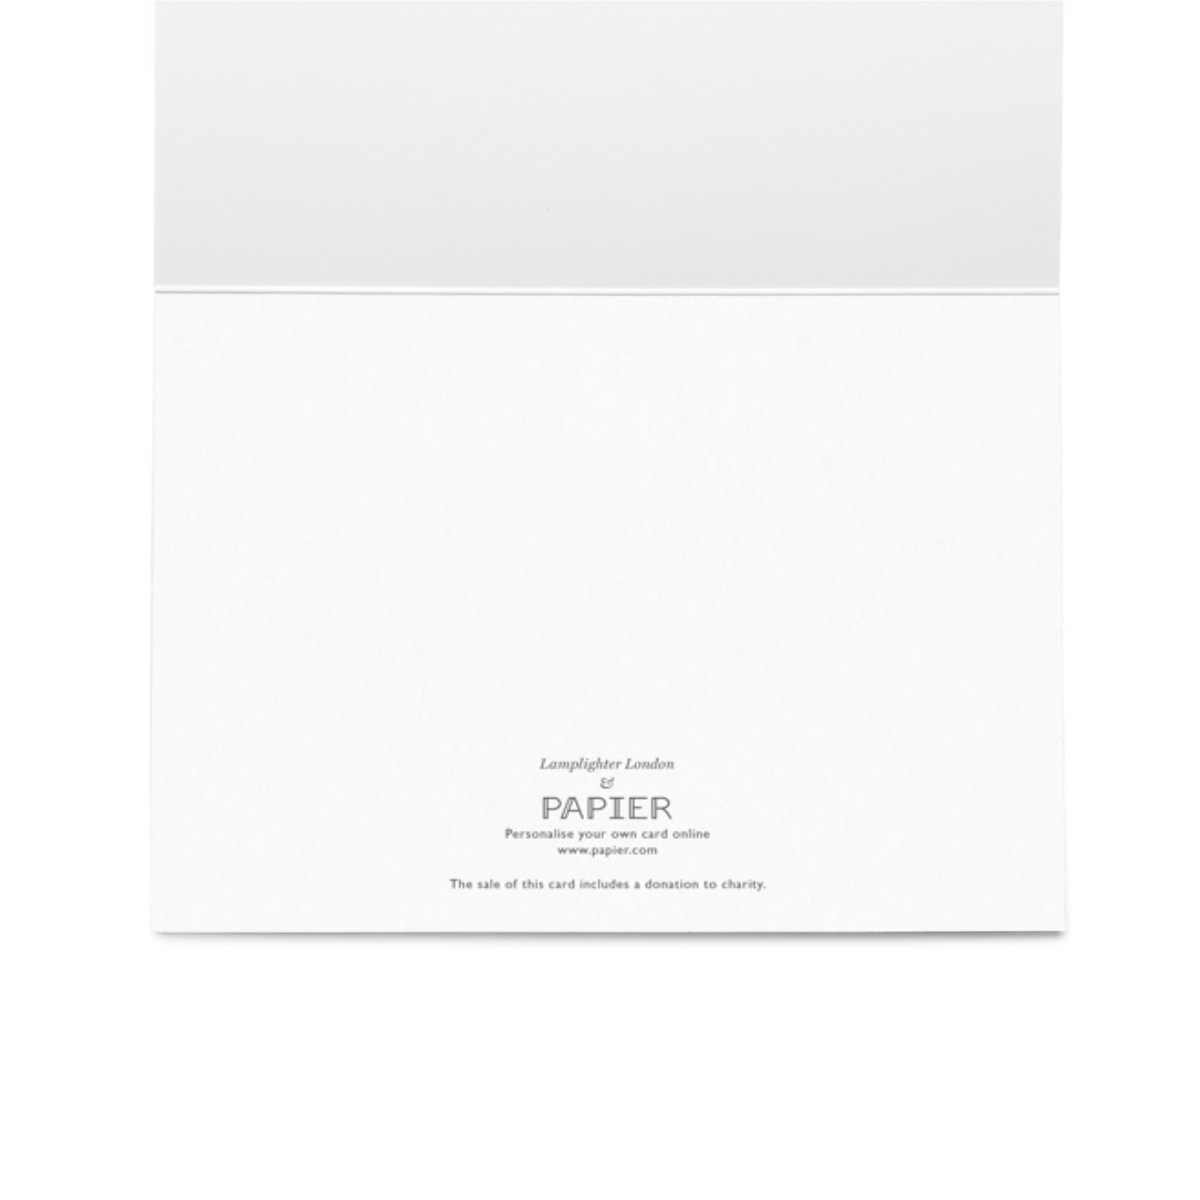 Https%3a%2f%2fwww.papier.com%2fproduct image%2f26984%2f20%2fseason s greetings photo 6737 interieur 1502796266.png?ixlib=rb 1.1